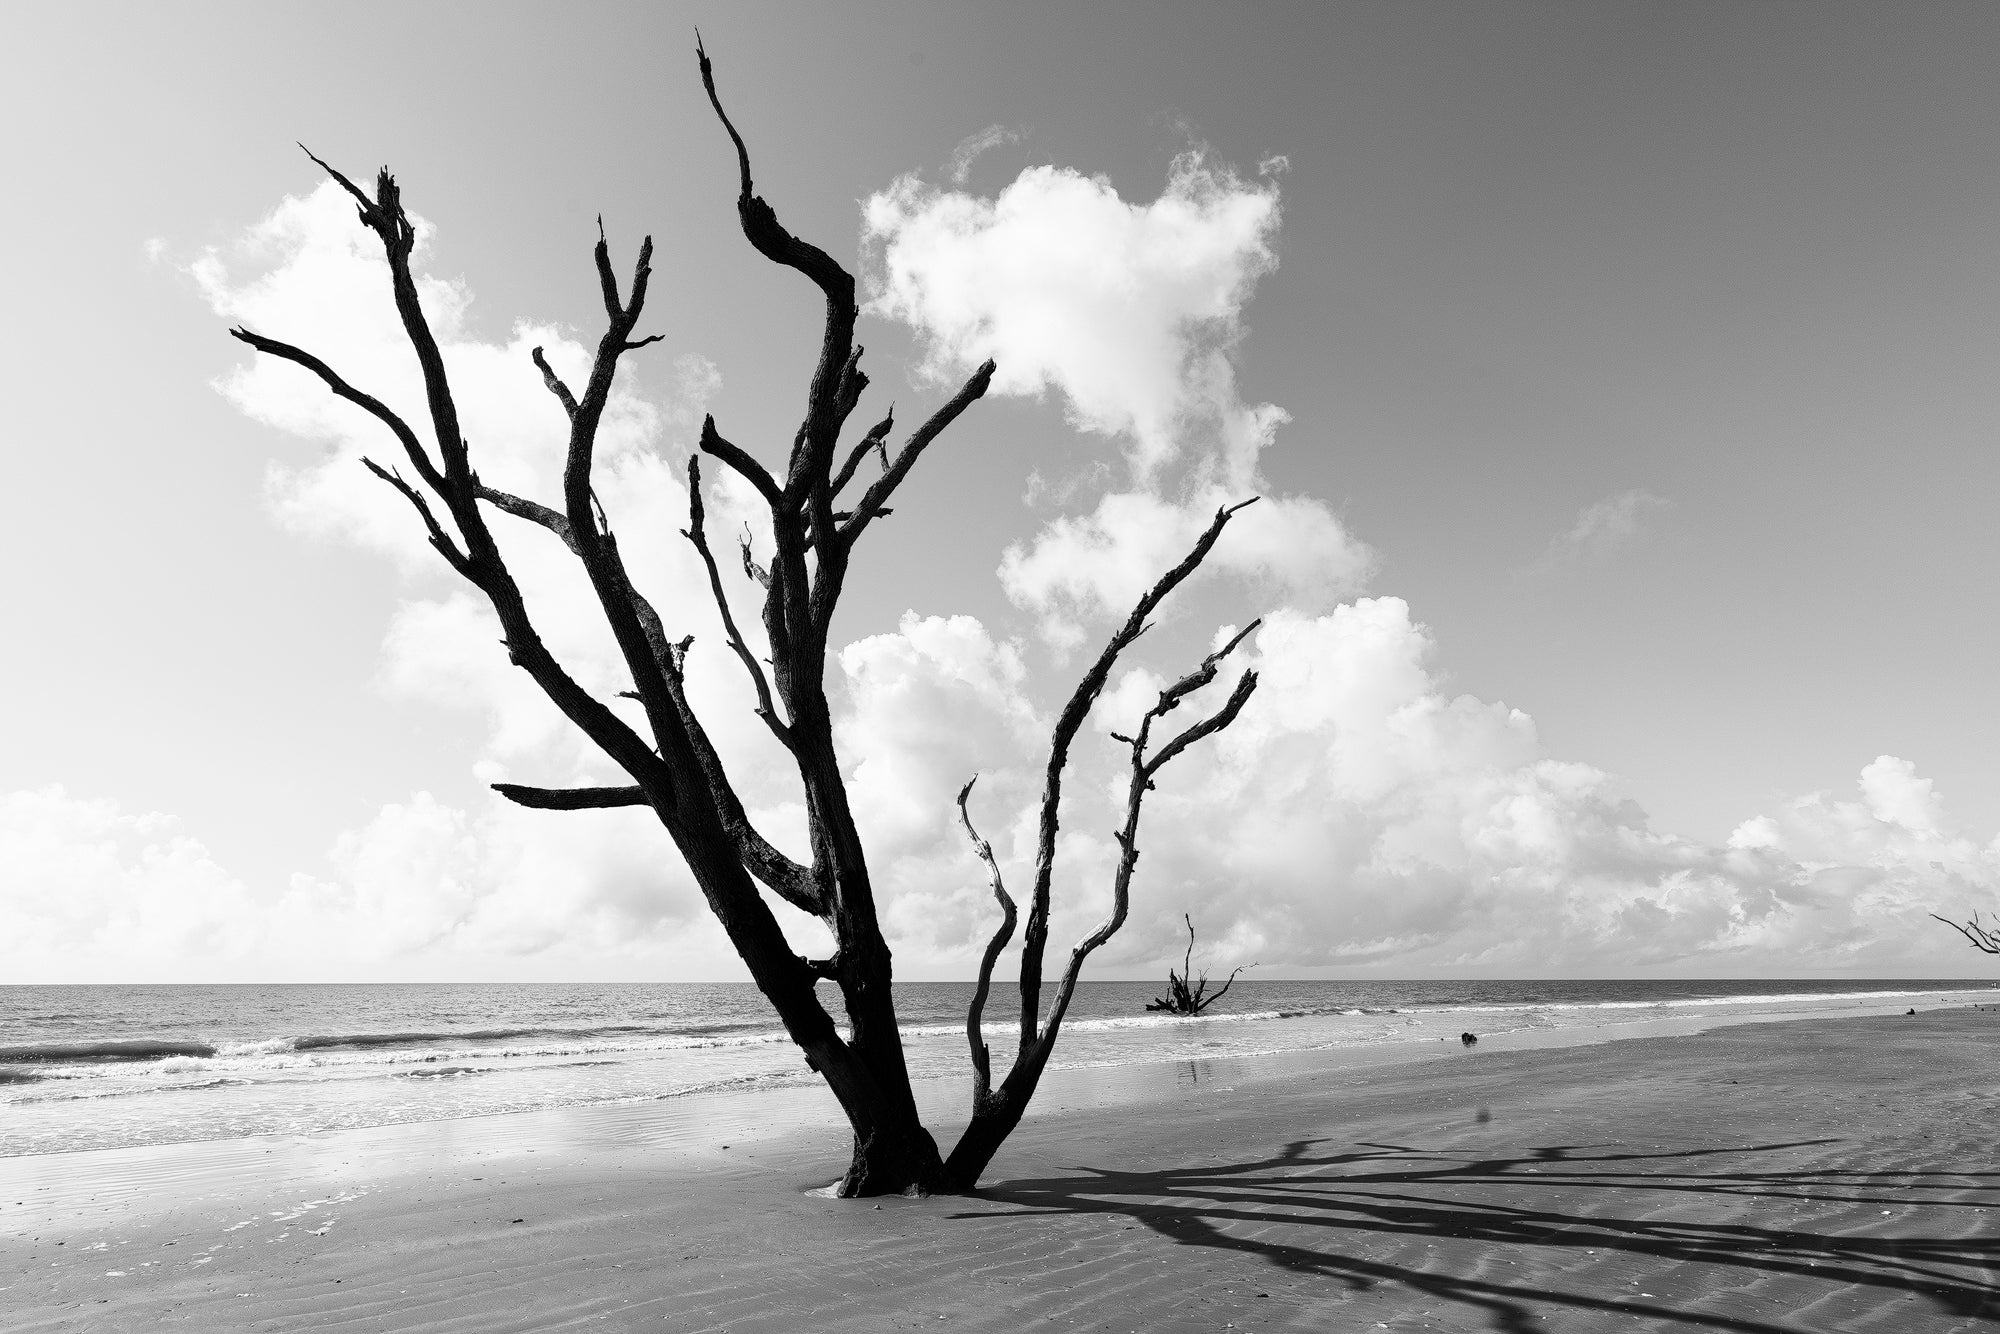 Driftwood Beach Trees - Black and White Landscape Photograph by Keith Dotson. Buy a fine art print.